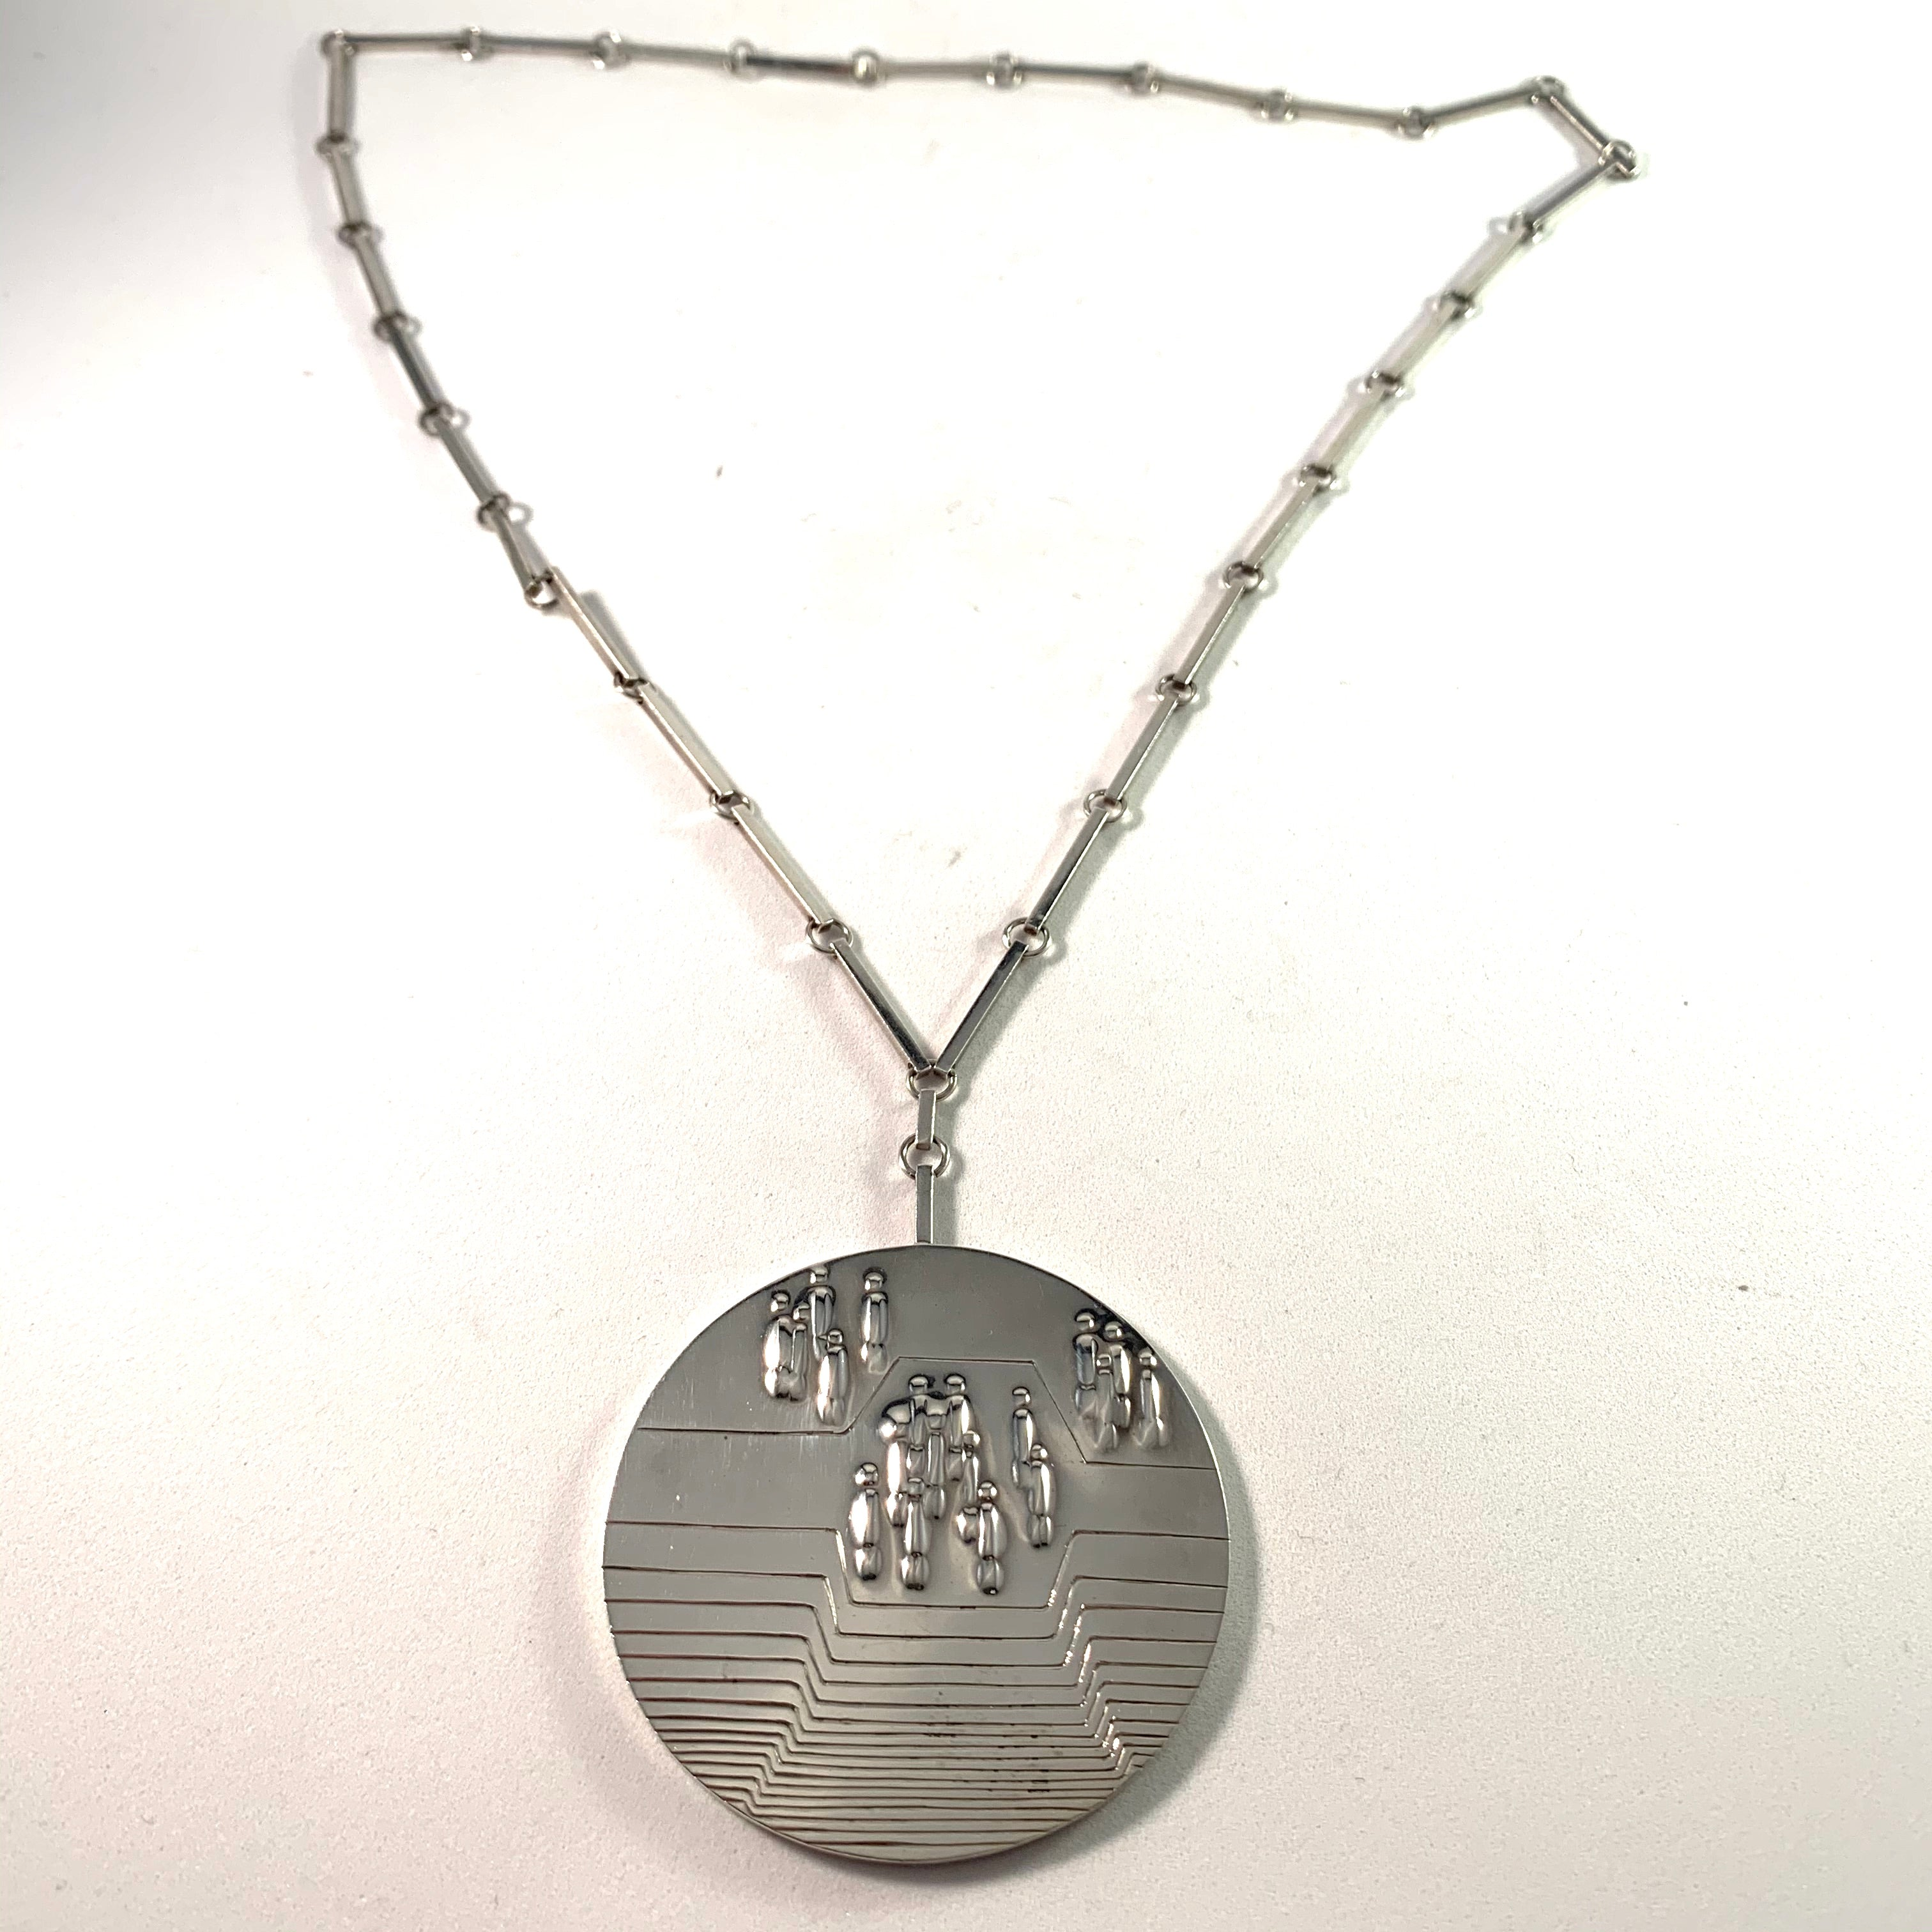 Lars-Kaj Rinman, Sweden year 1976 Large Sterling Silver Necklace. Signed